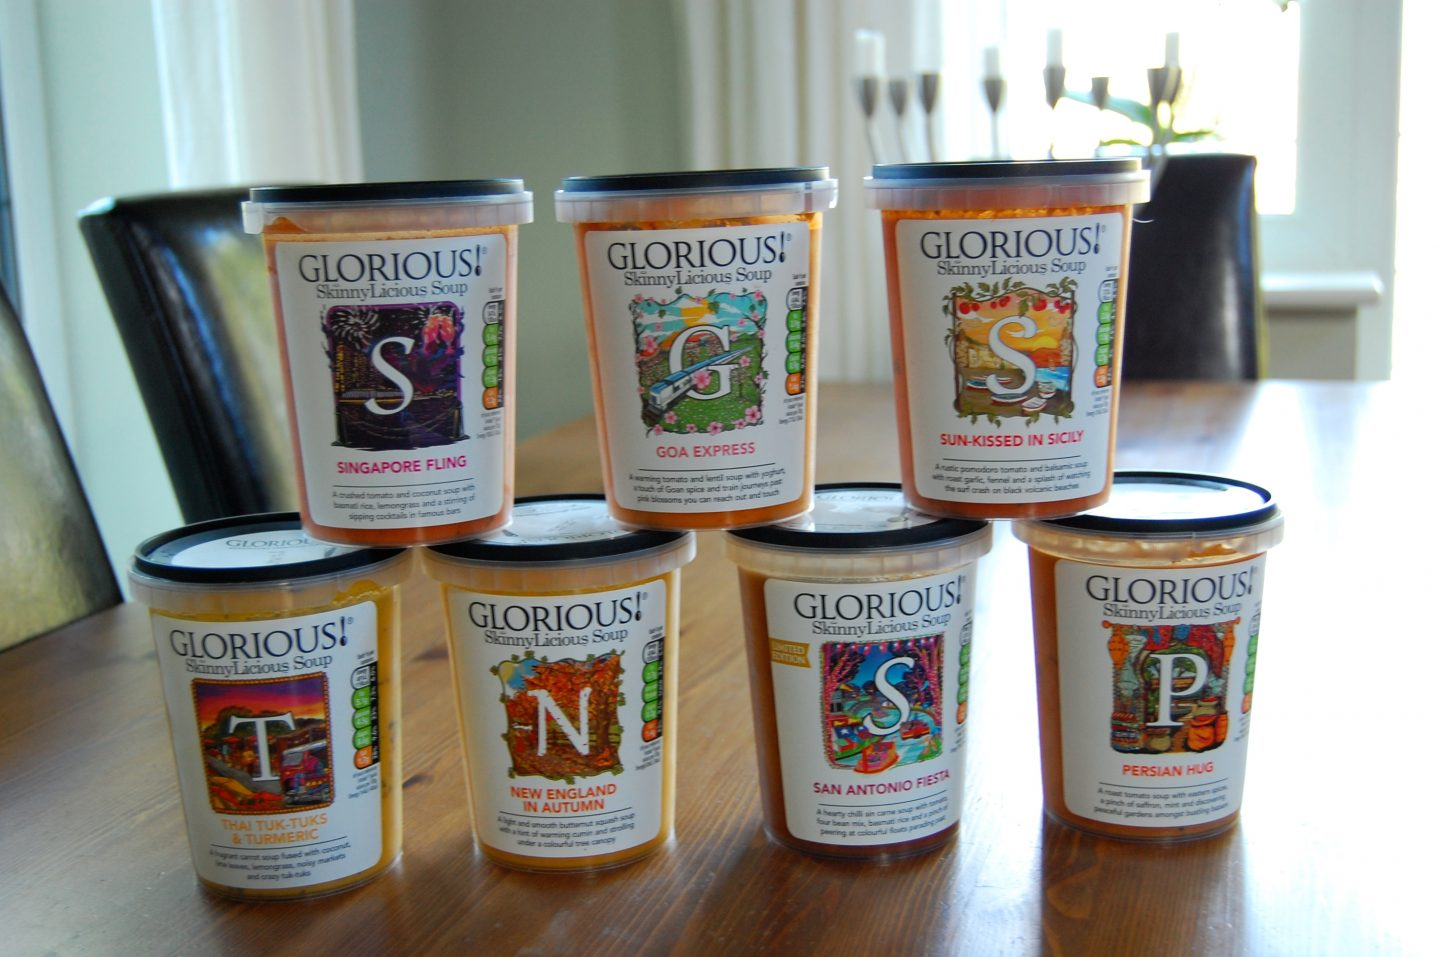 GLORIOUS! SkinnyLicious Healthy Soup Review